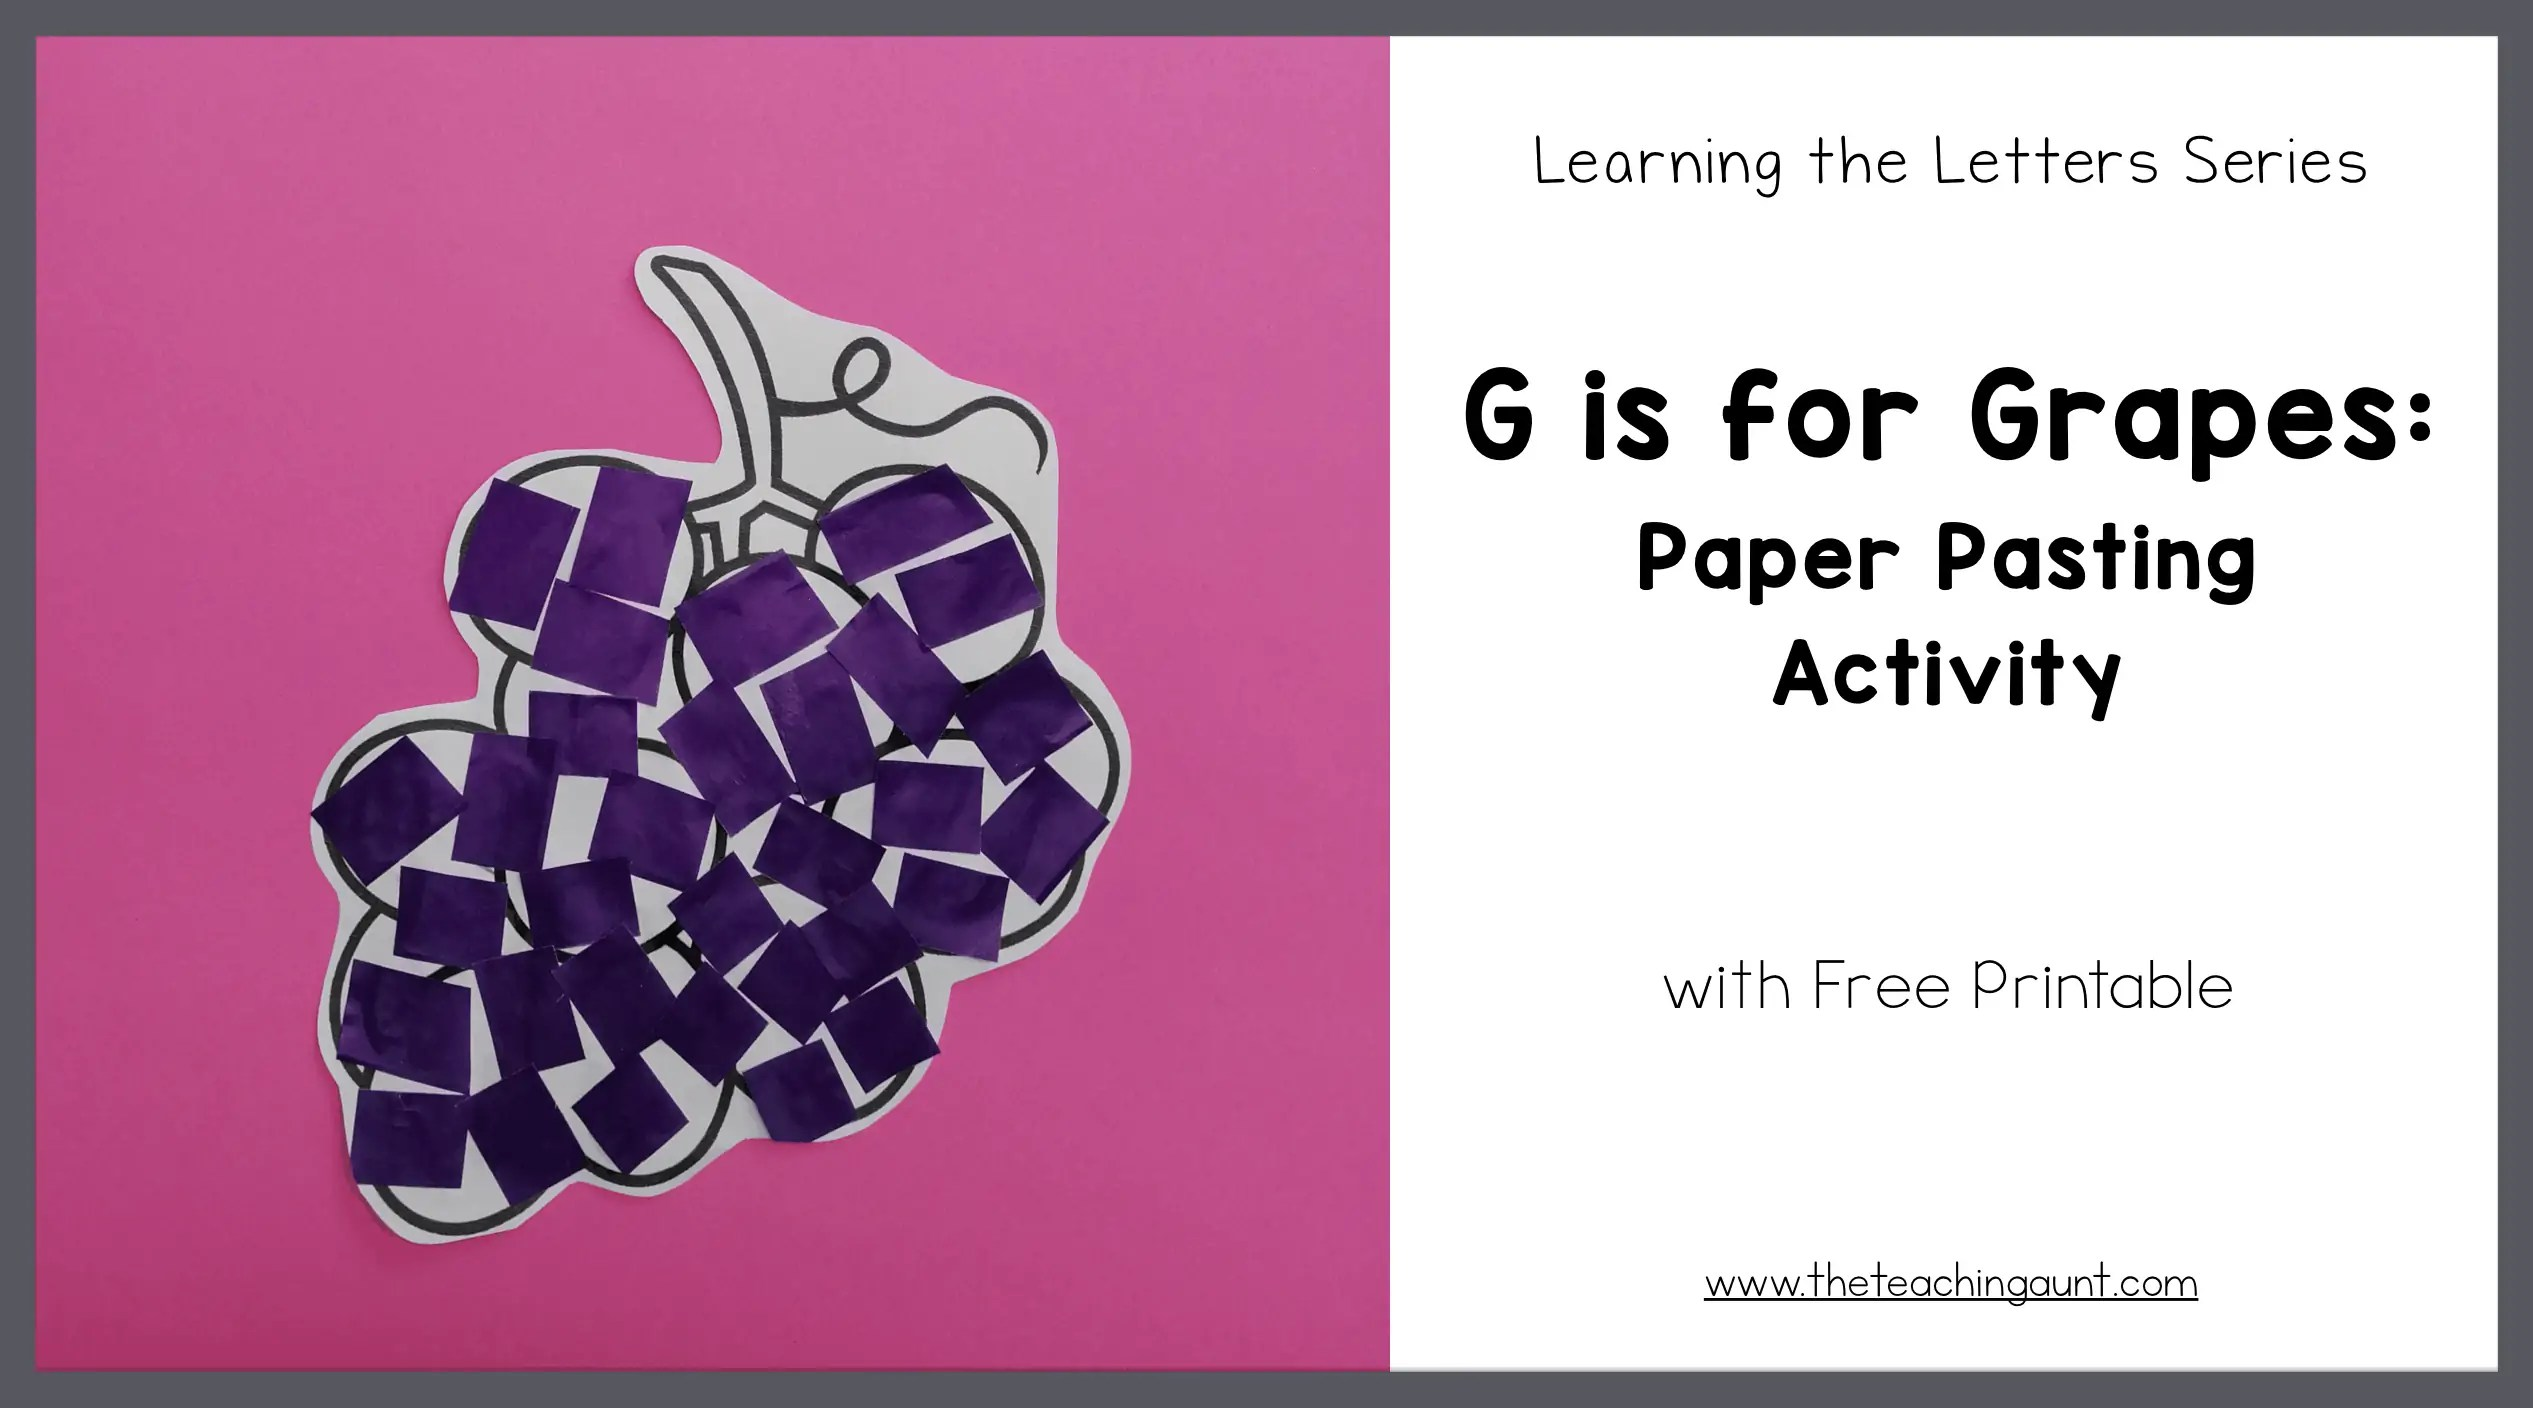 G is for Grapes: Paper Pasting Activity